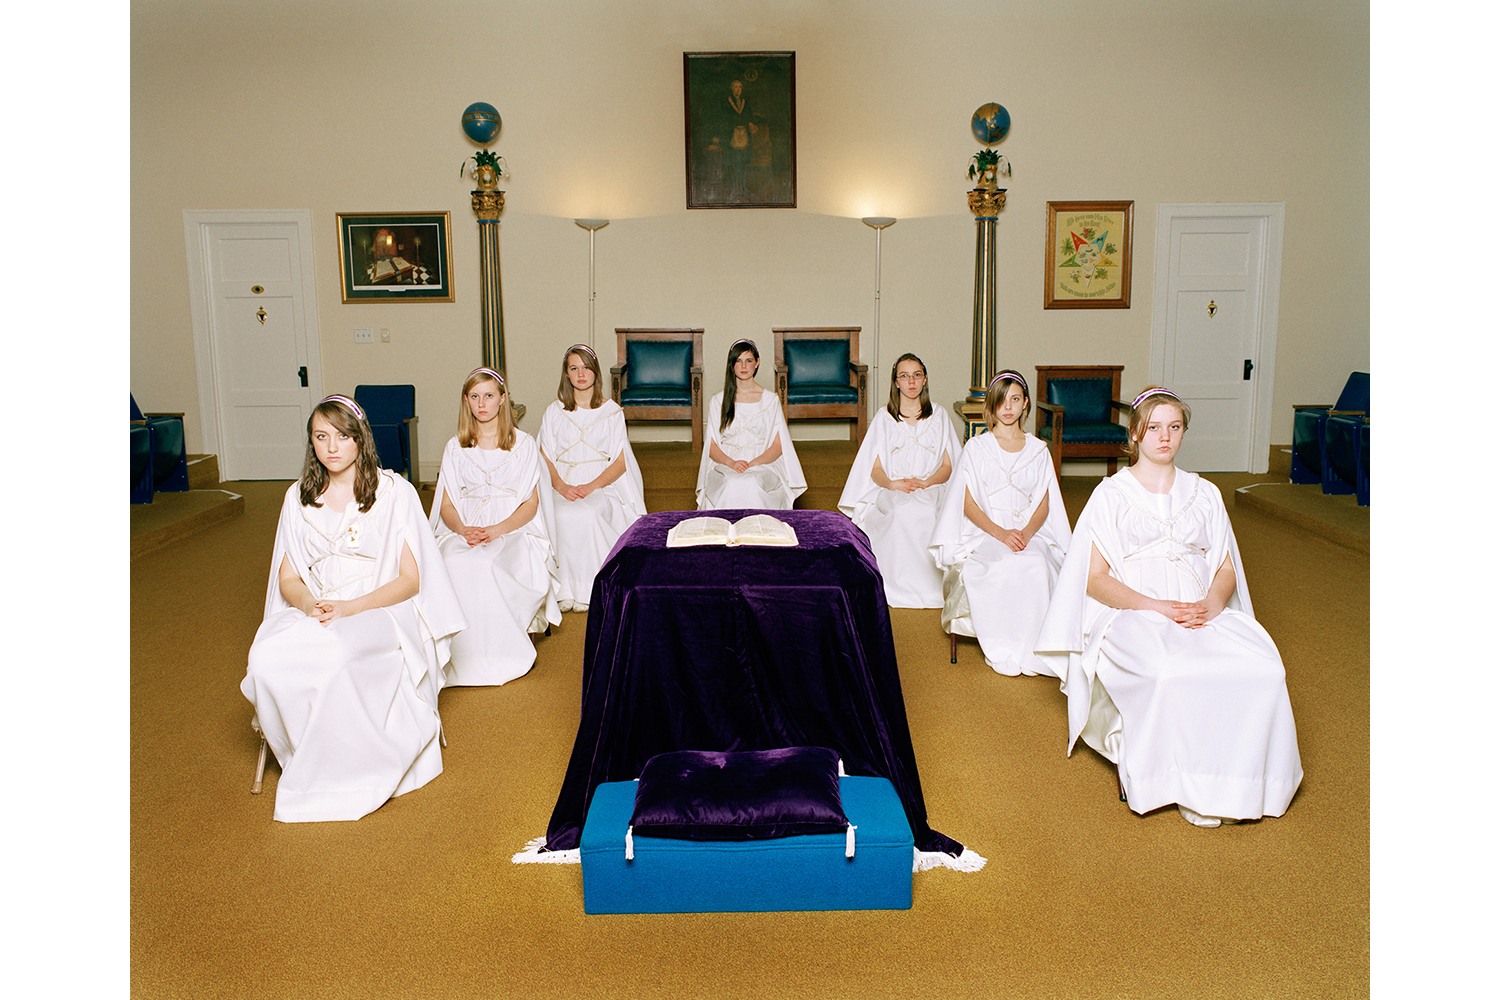 The Messengers                                                              Young women with the title of Messenger sit in the semi-circular arrangement unique to their order. Other groups in the Masonic Family use different seating arrangements determined by the actions taking place in the lodge during their meetings. Being an active Messenger is a major part of community development and prepares the girls for leadership roles in the order.